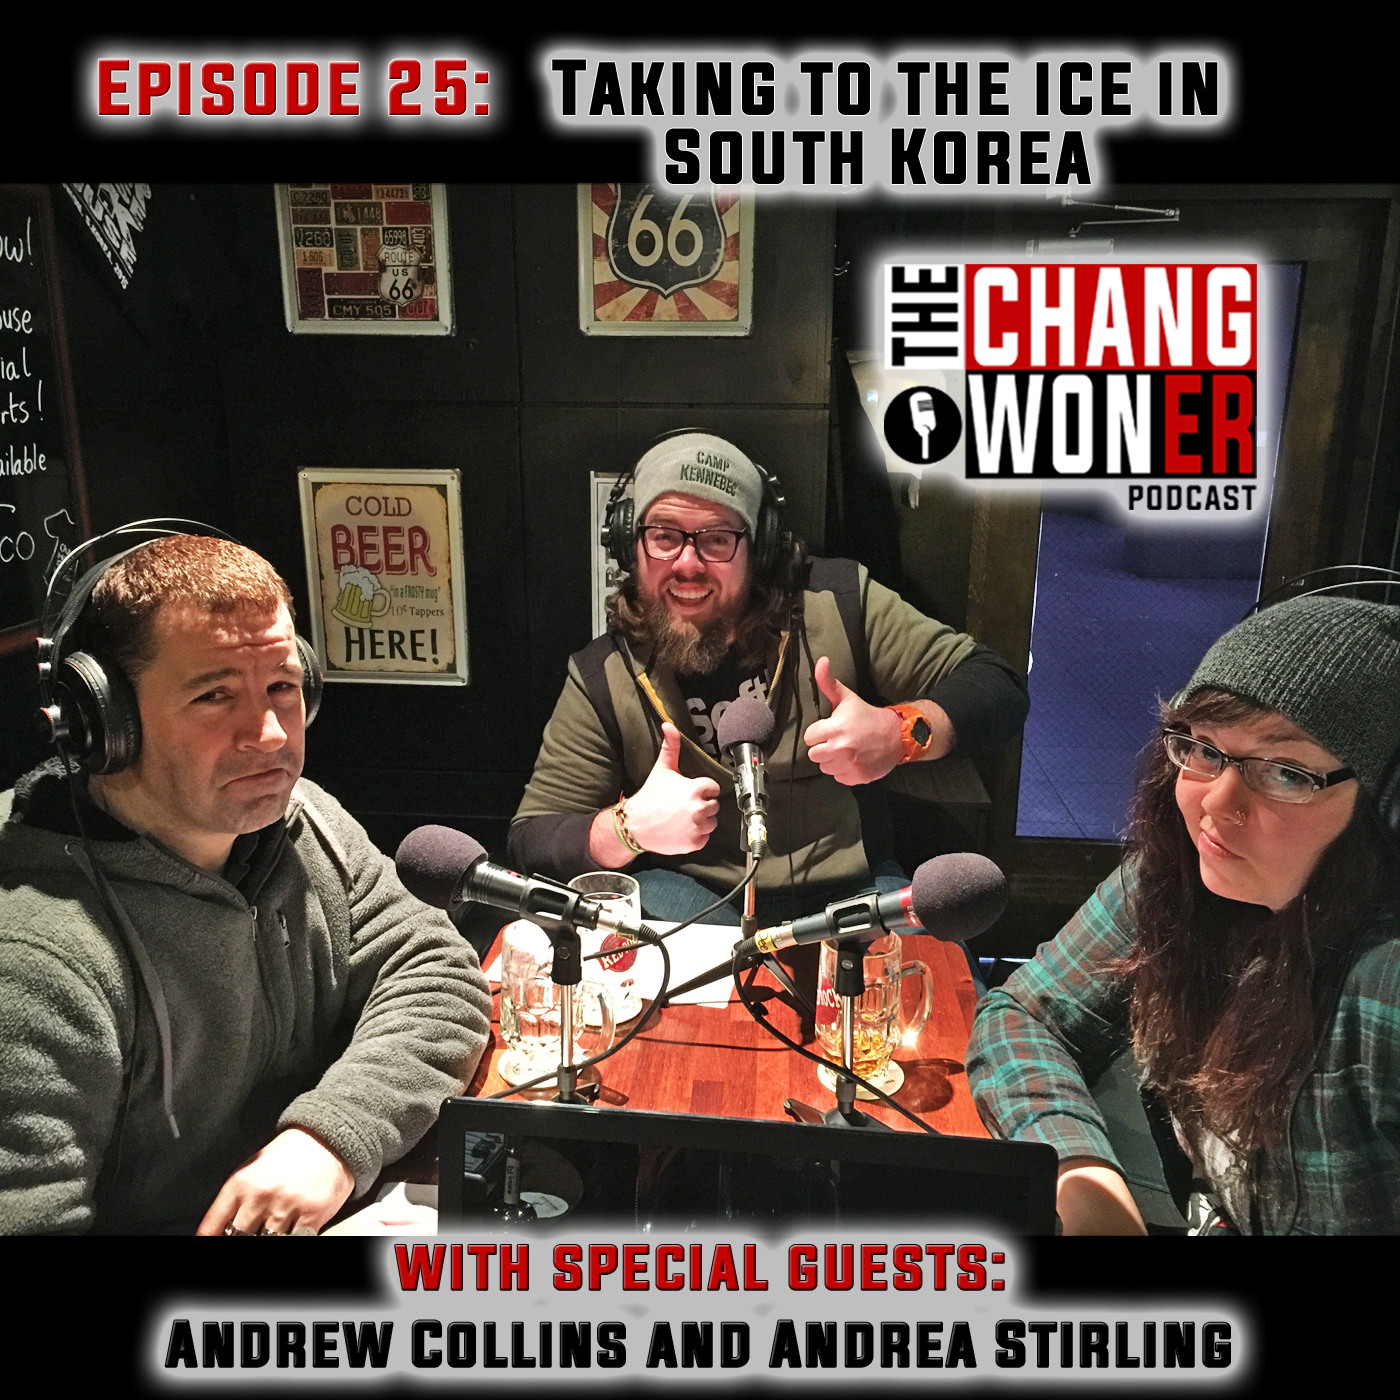 Artwork for Ice Rinks Skating, and Ice Hockey in South Korea -guests Andrew Collins and Andrea Stirling (Ep 25)